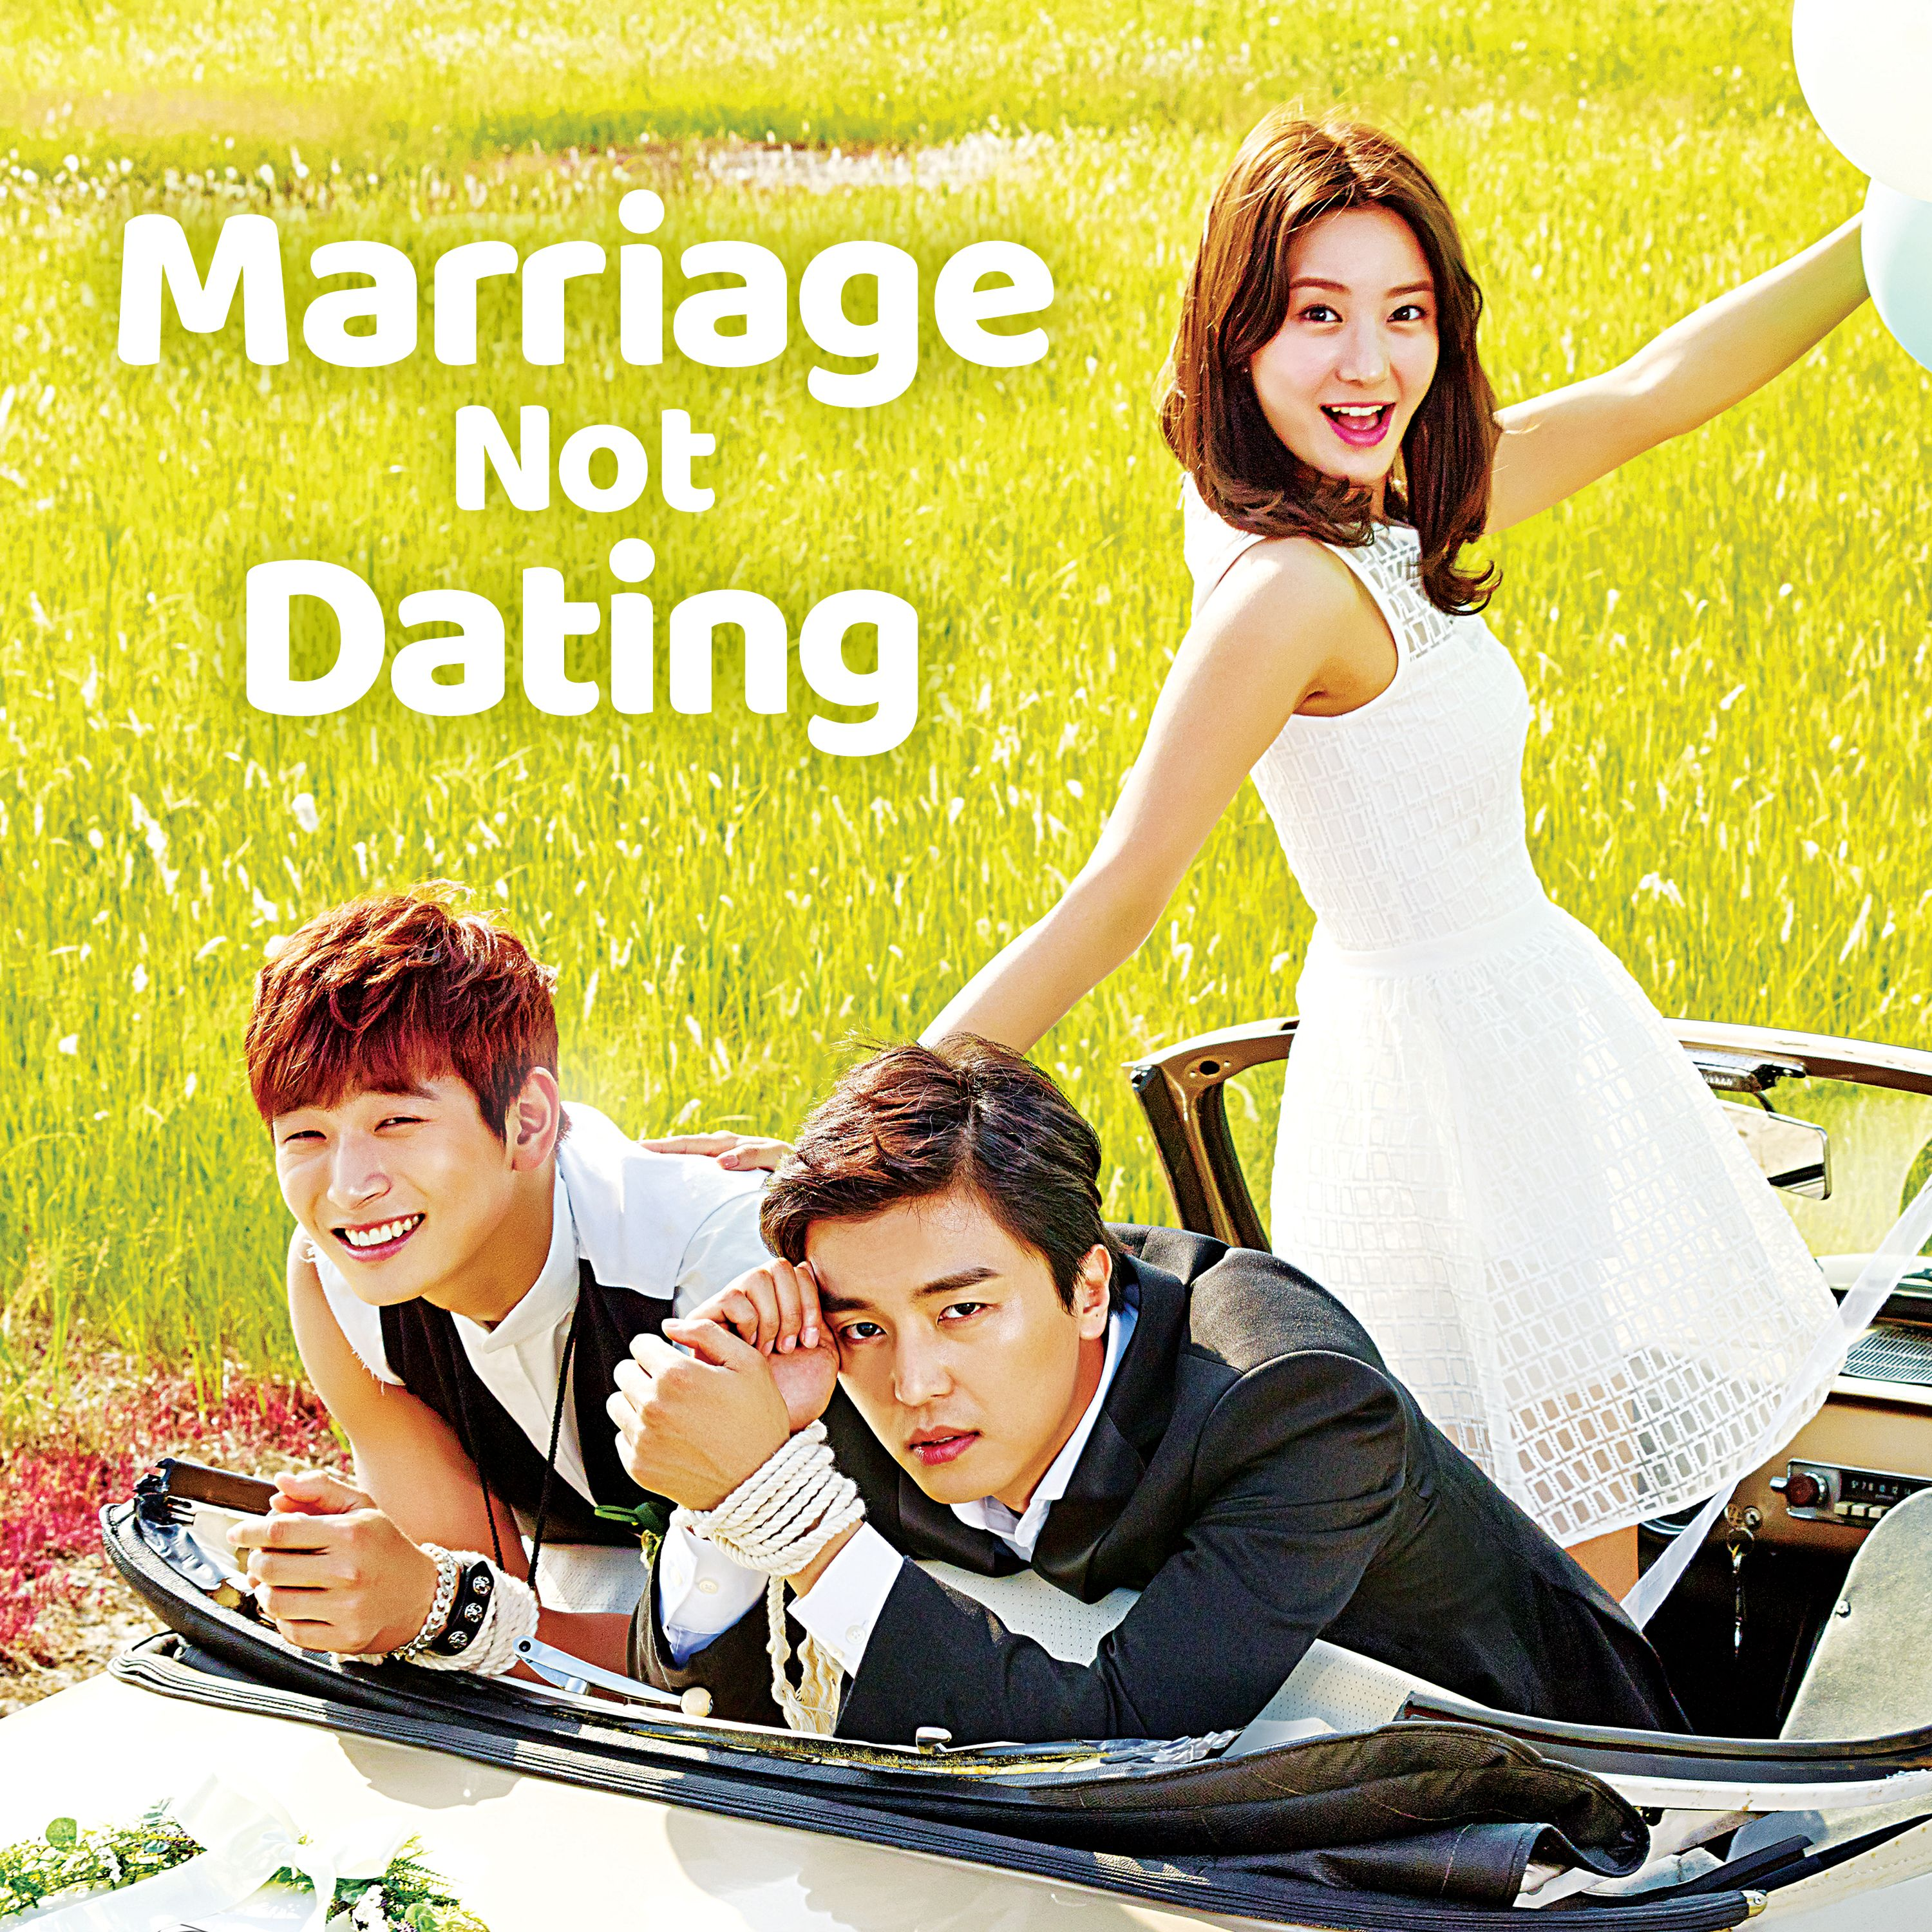 Marriage not dating ep 1 eng sub dailymotion france